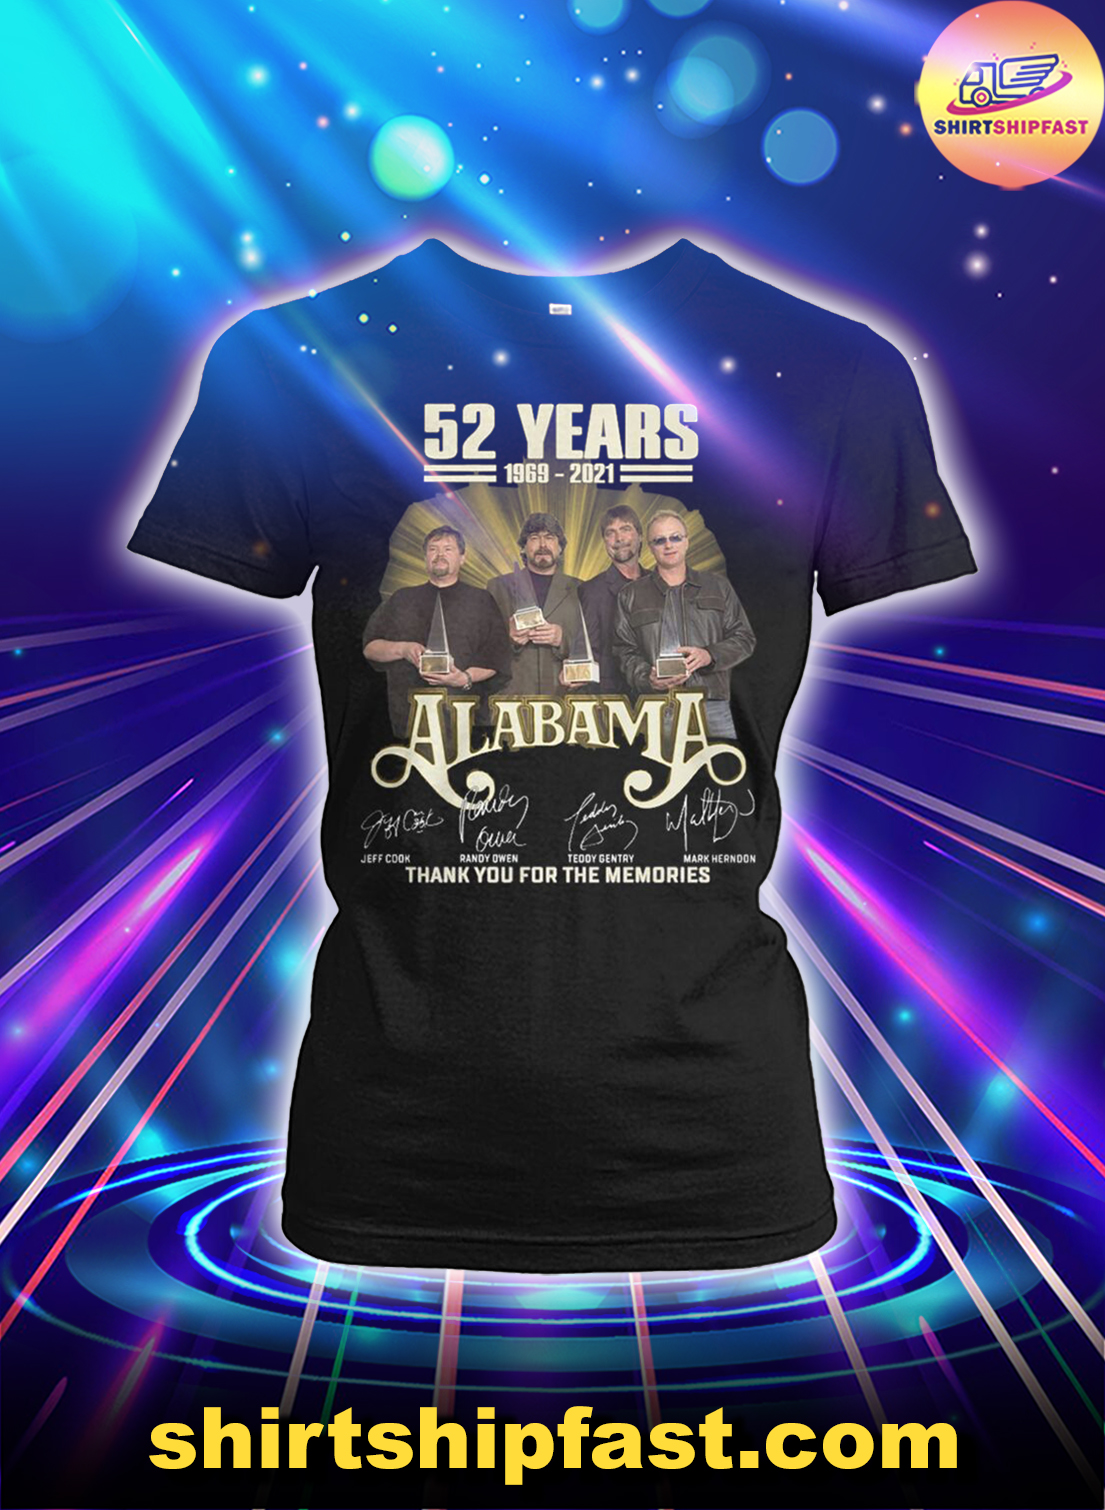 52 years 1969 2021 Alabama signatures thank you for the memories lady shirt